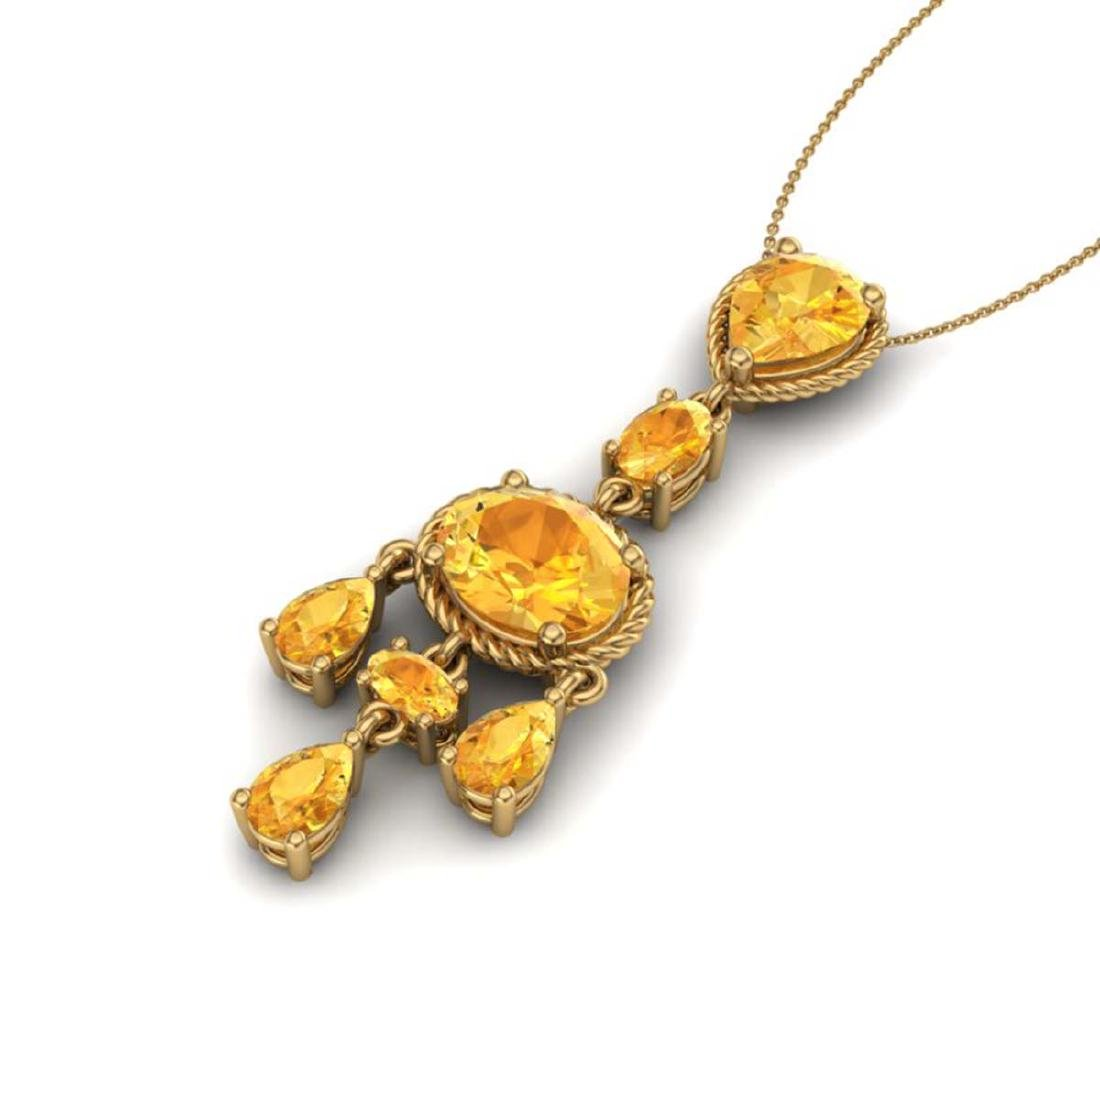 8 CTW Citrine Necklace Designer Vintage 10K Yellow Gold - 2